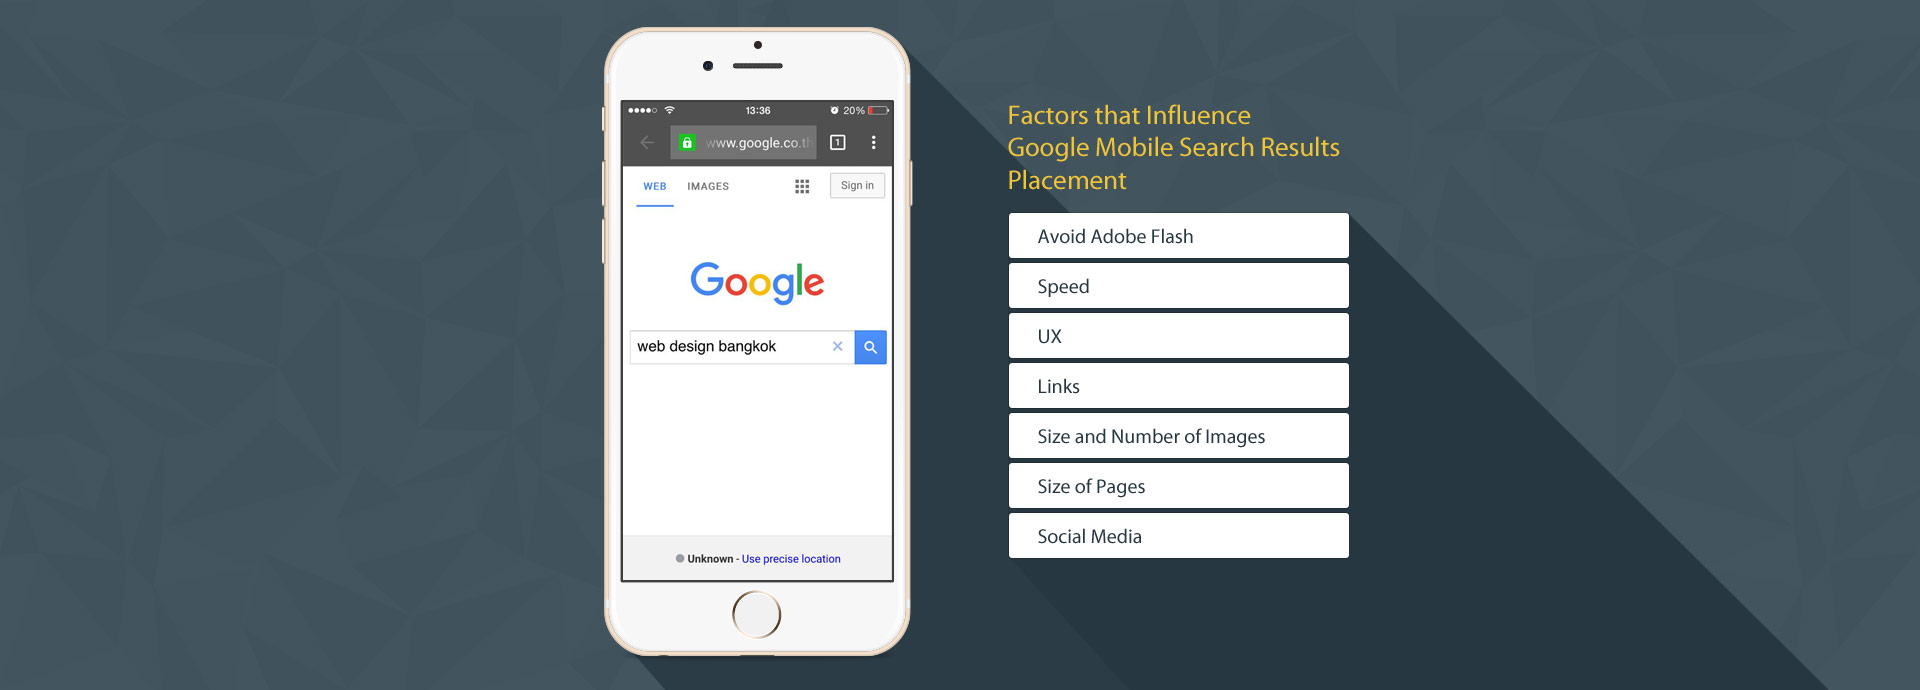 Factors that Influence Google Mobile Search Results Placement